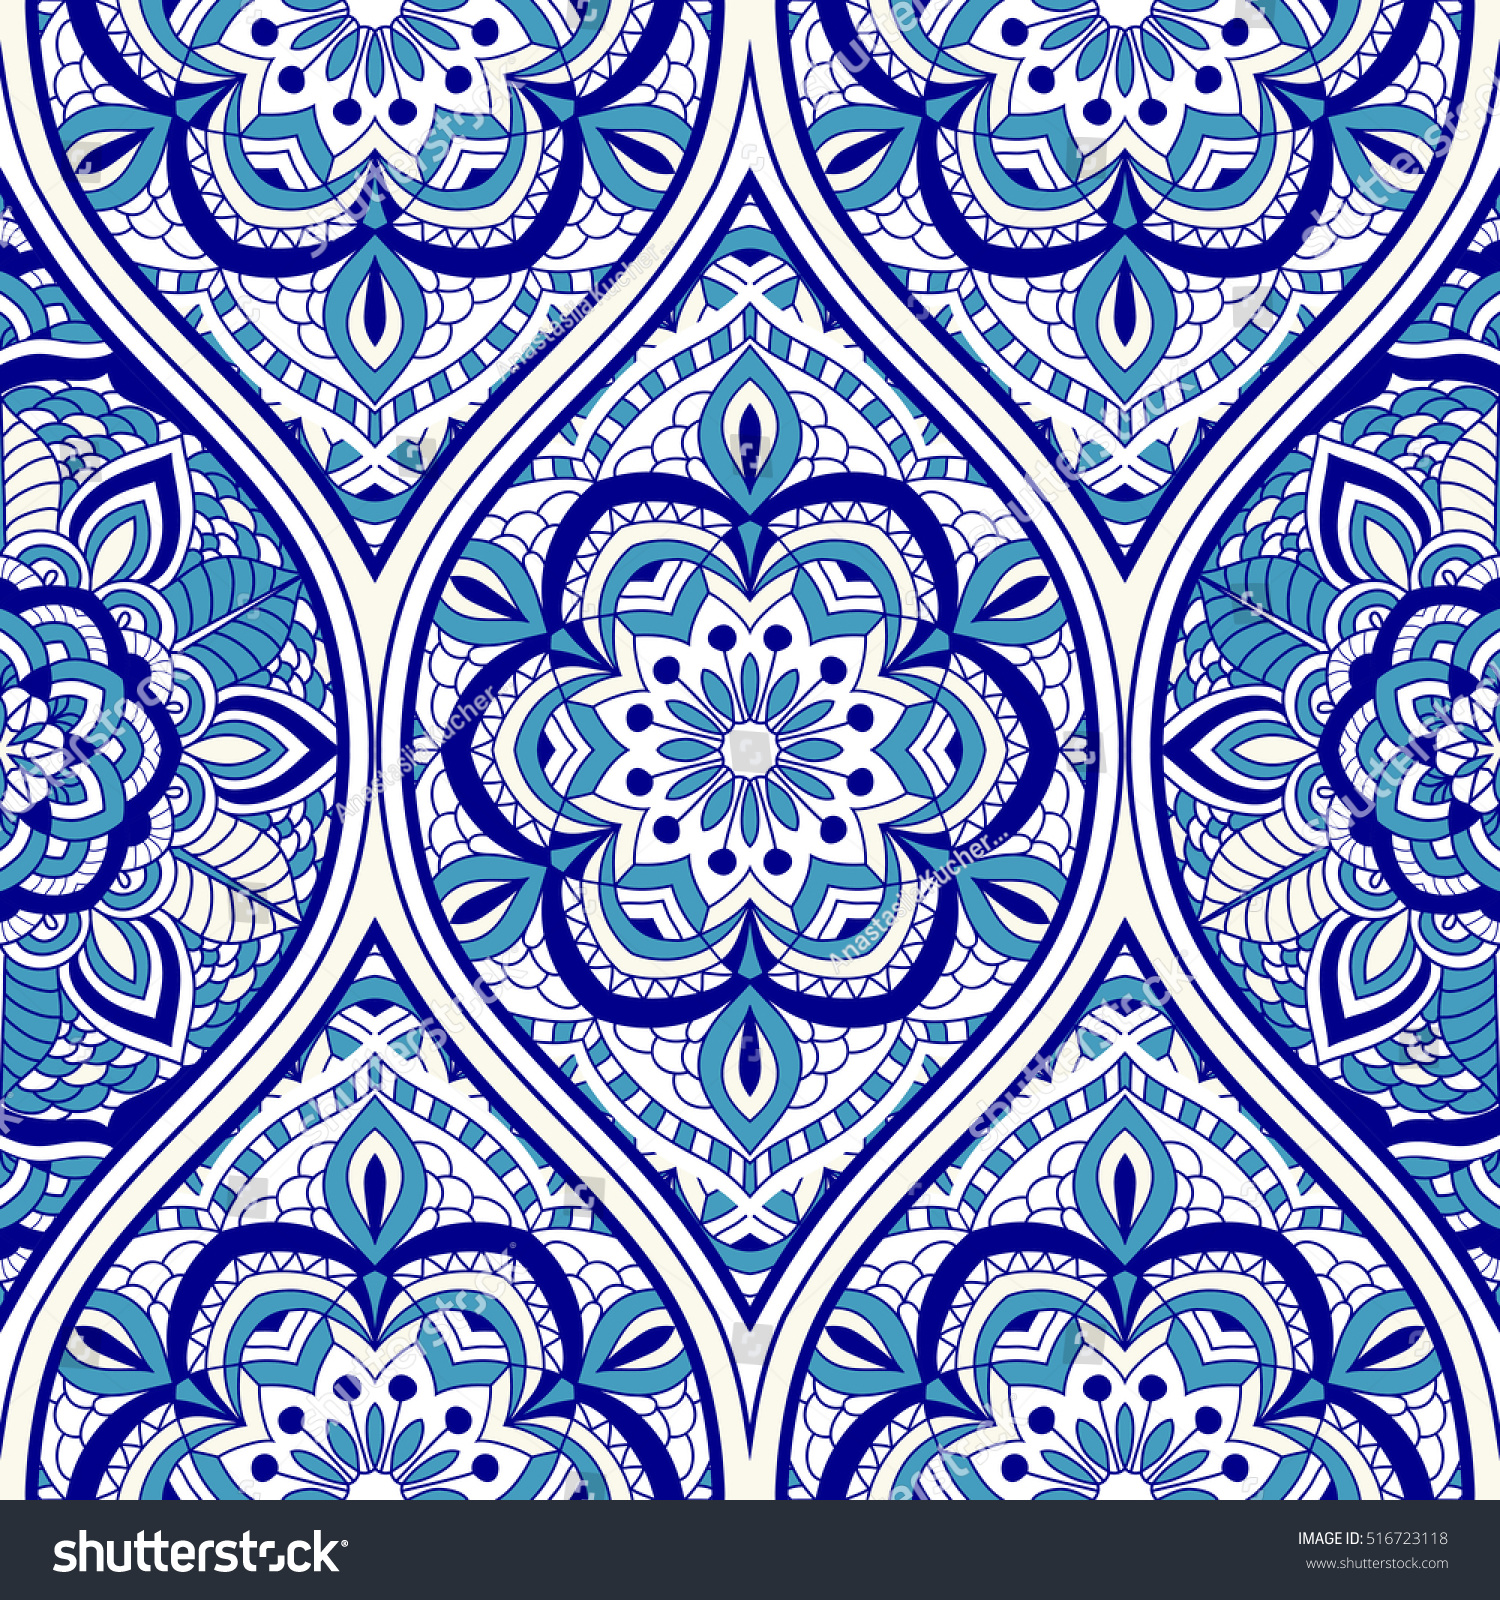 Seamless Turkish Pattern In Blue And White Endless Can Be Used For Ceramic Tile